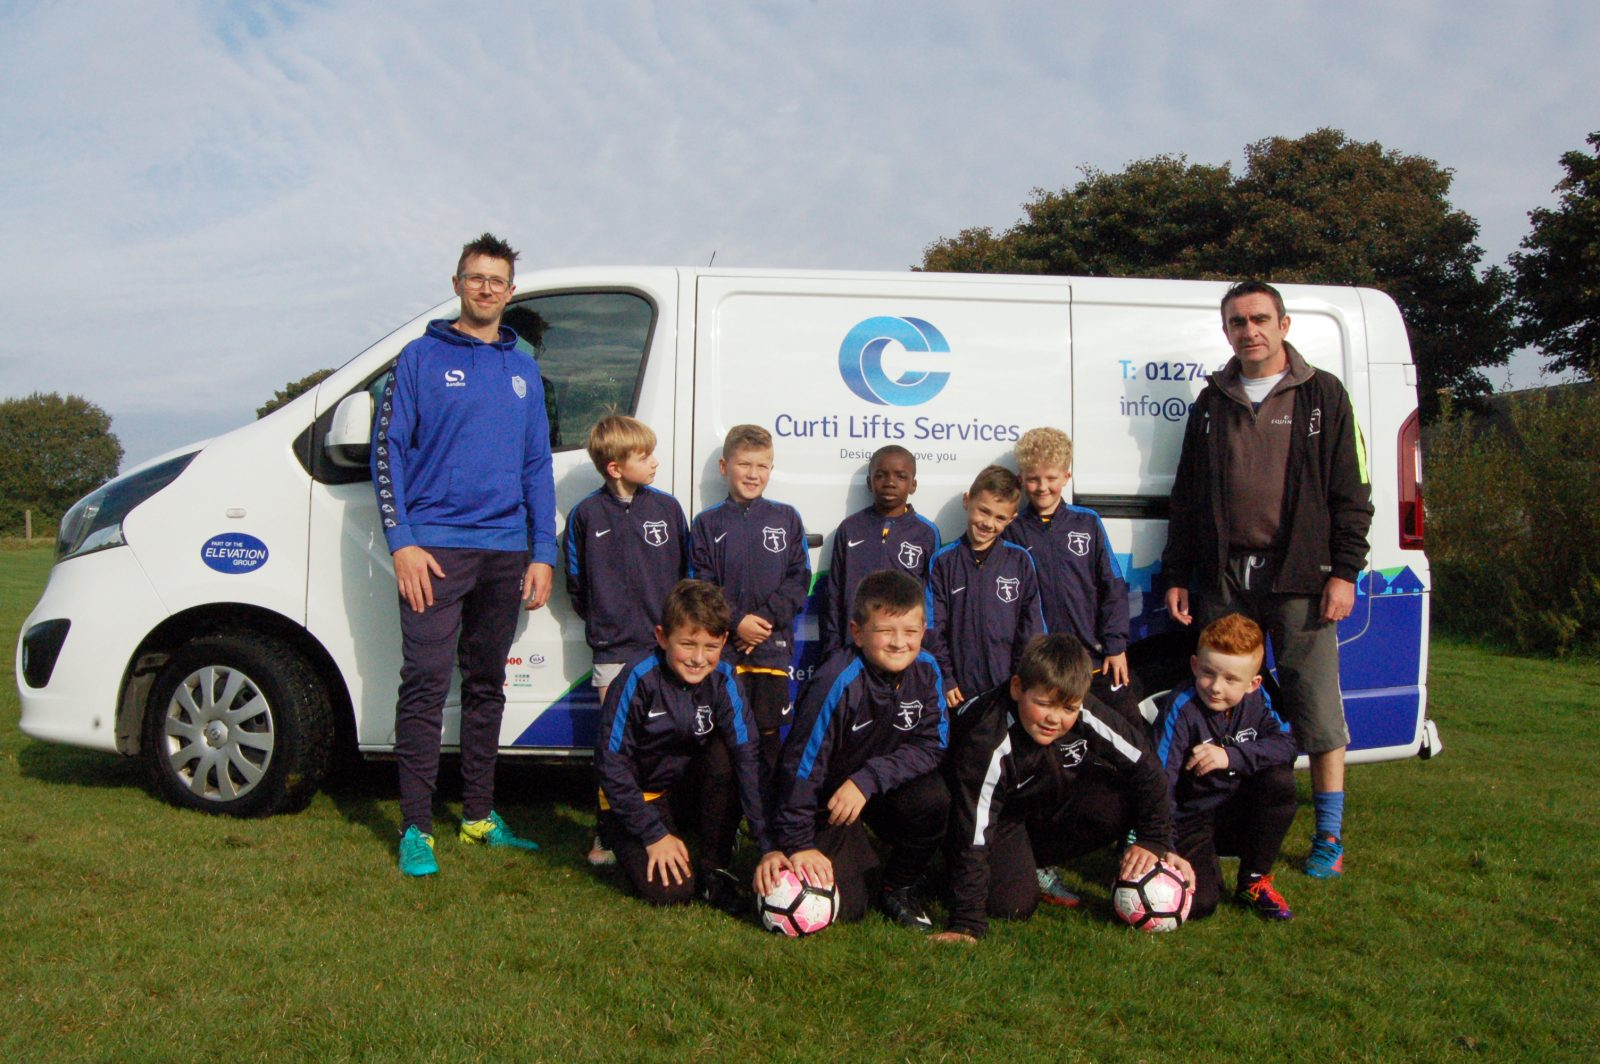 Proud to be supporting St Columba's JFC Community Football Club, in